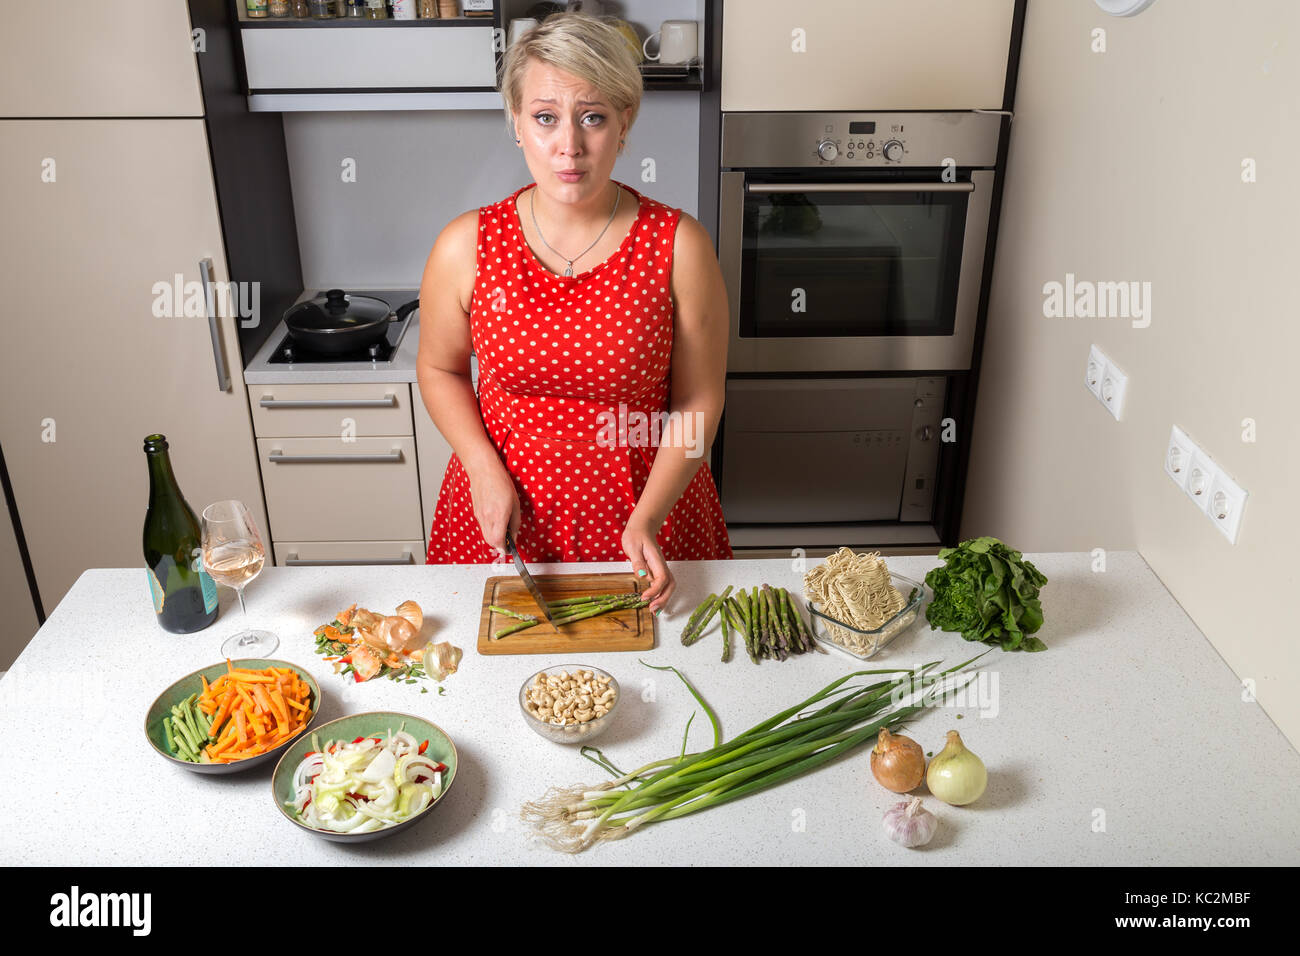 Surprised young woman in kitchen cutting asparagusStock Photo